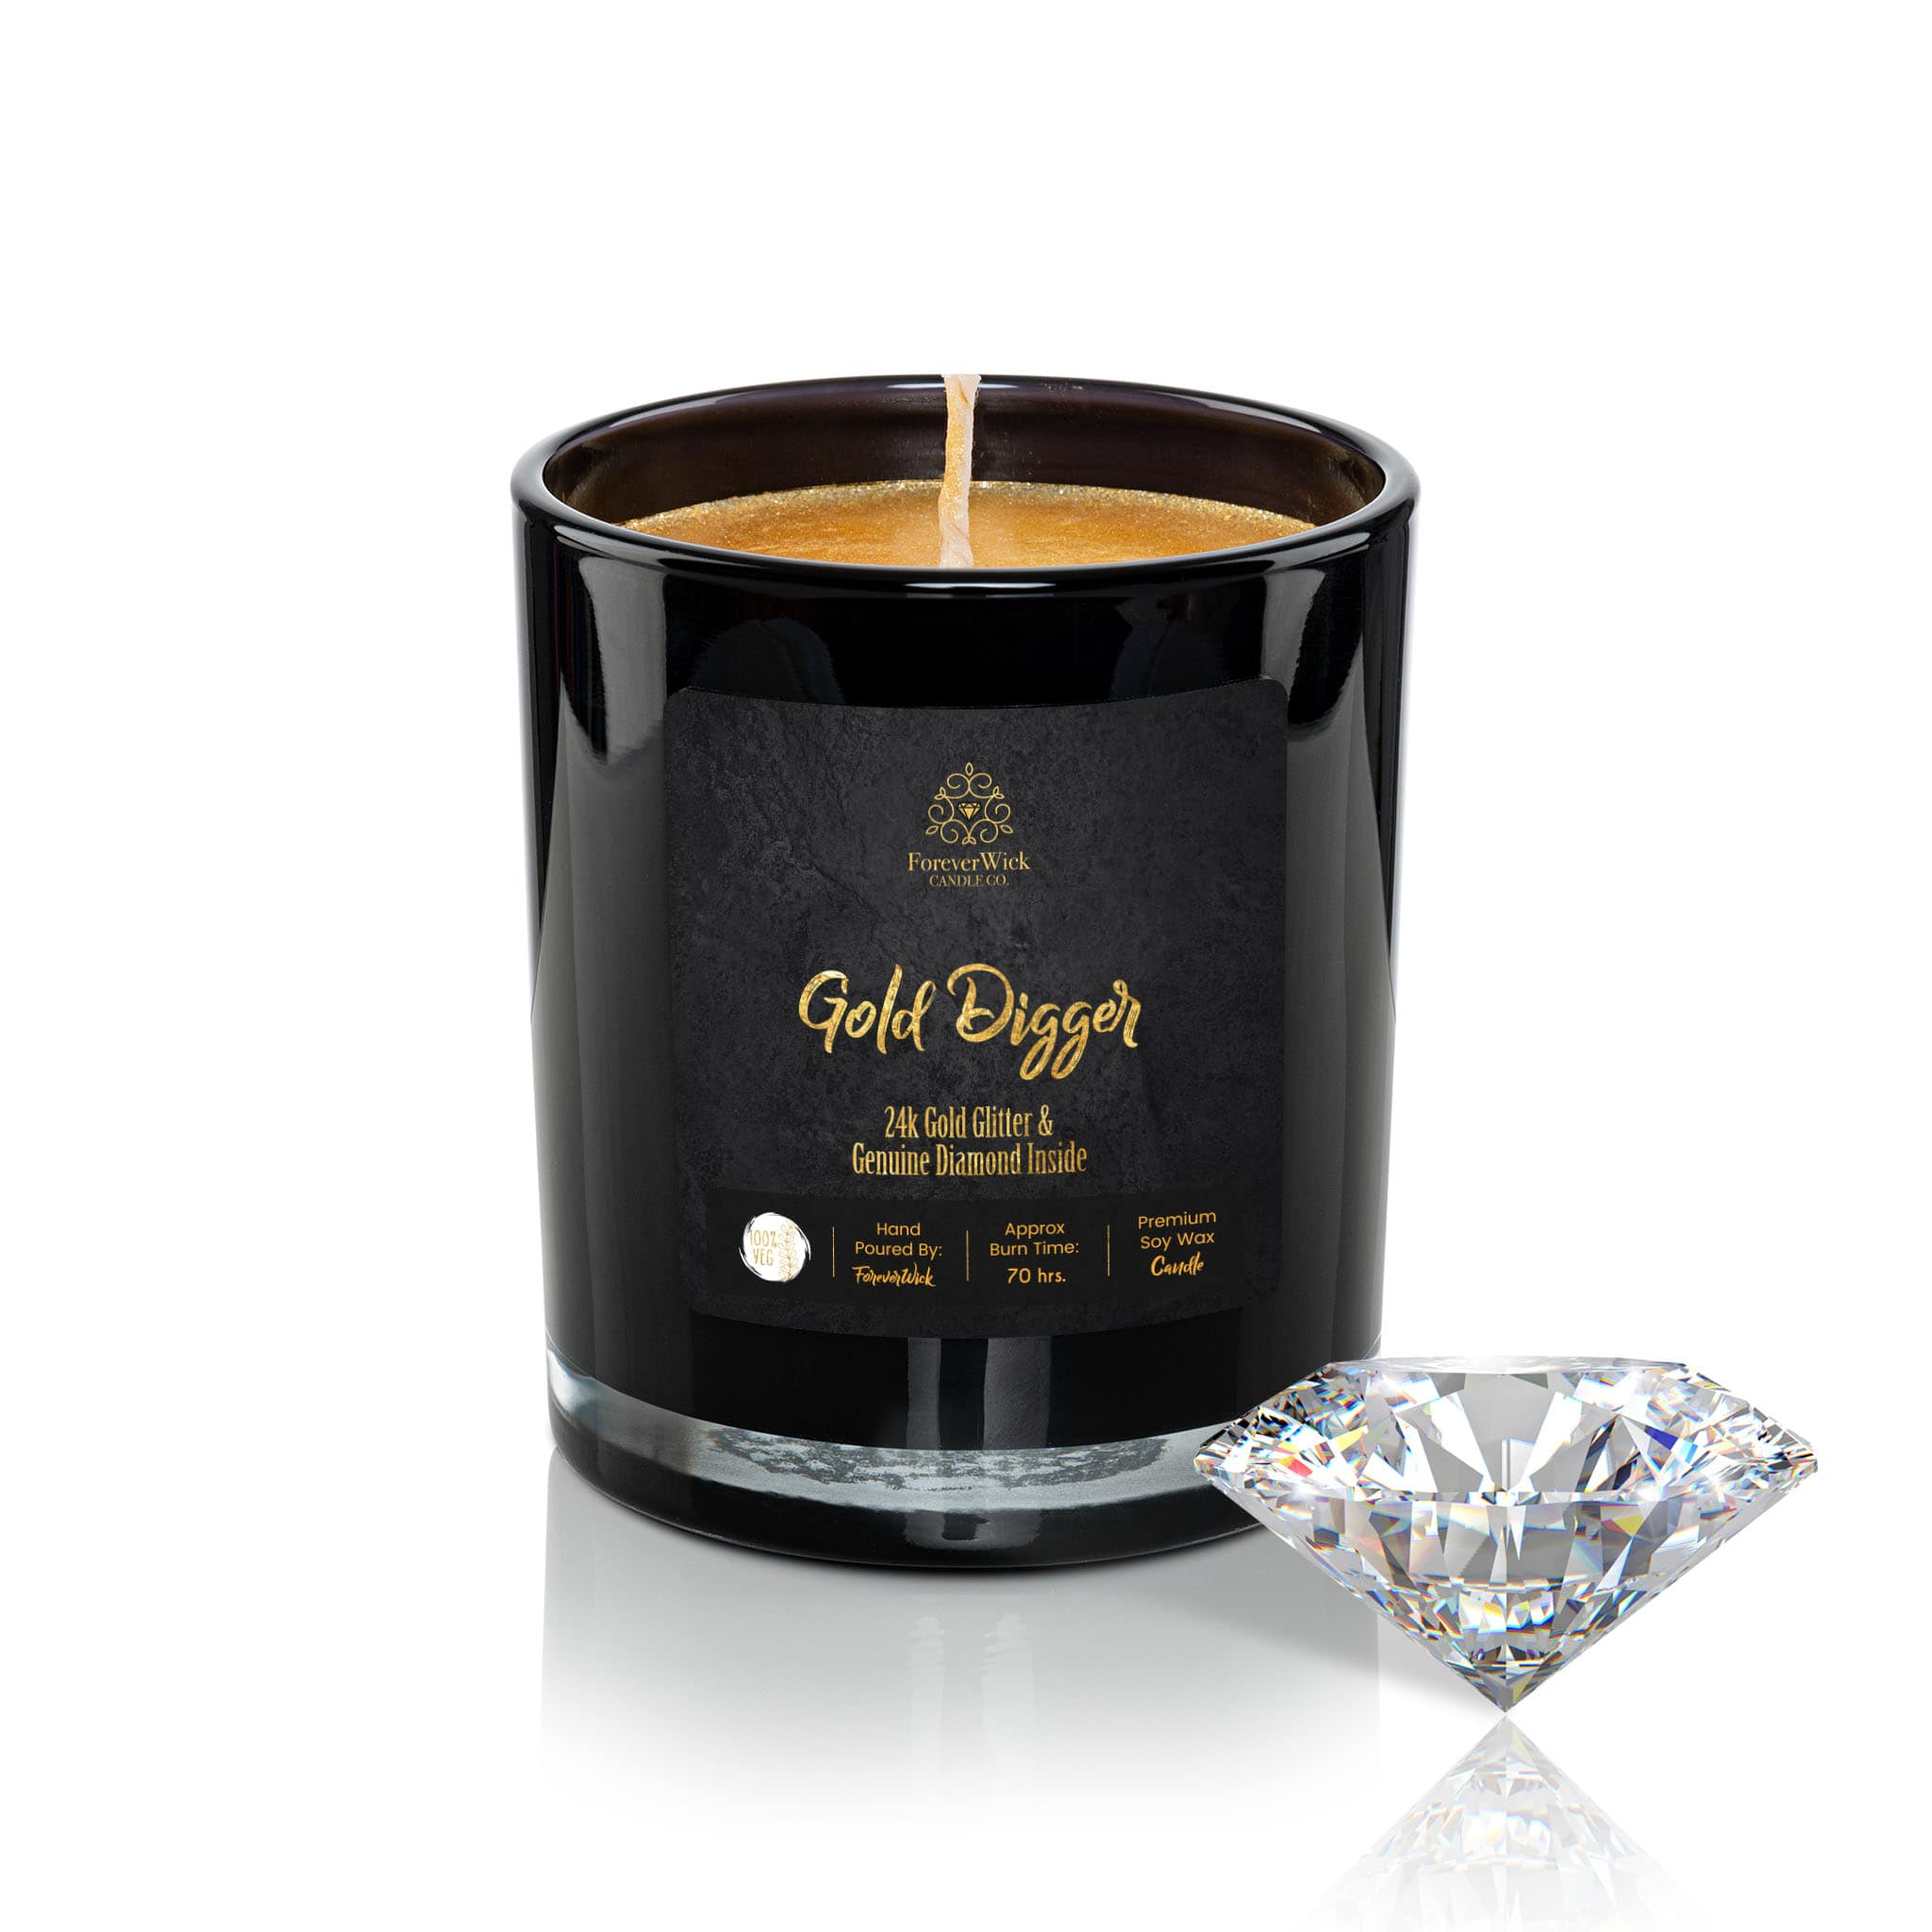 24K Gold Digger Diamond Candle